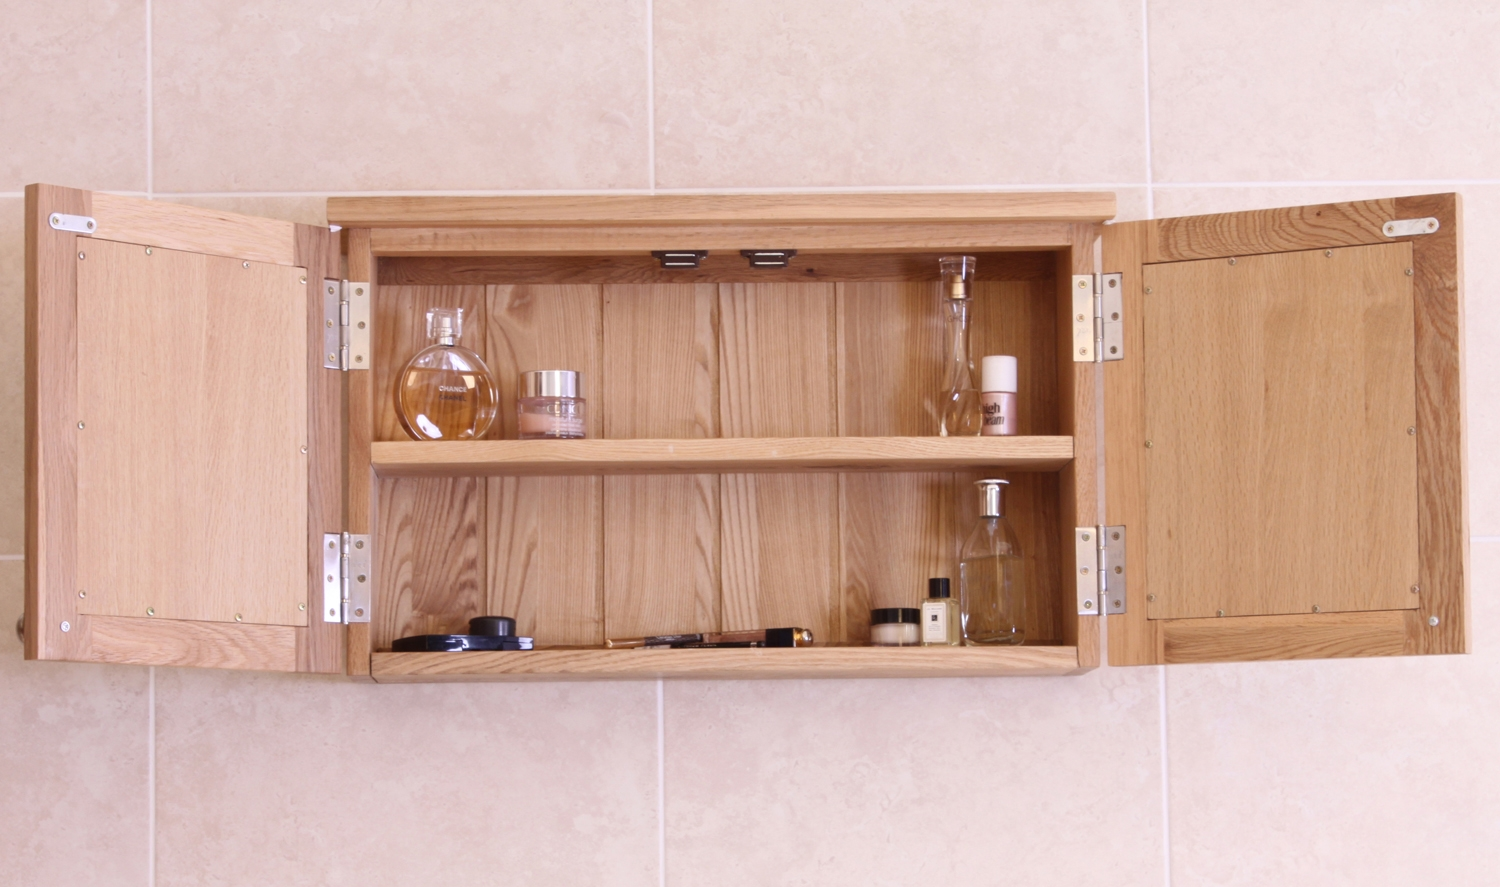 Real Wood Bathroom Wall Cabinetswooden bathroom wall cabinets uk creative bathroom decoration